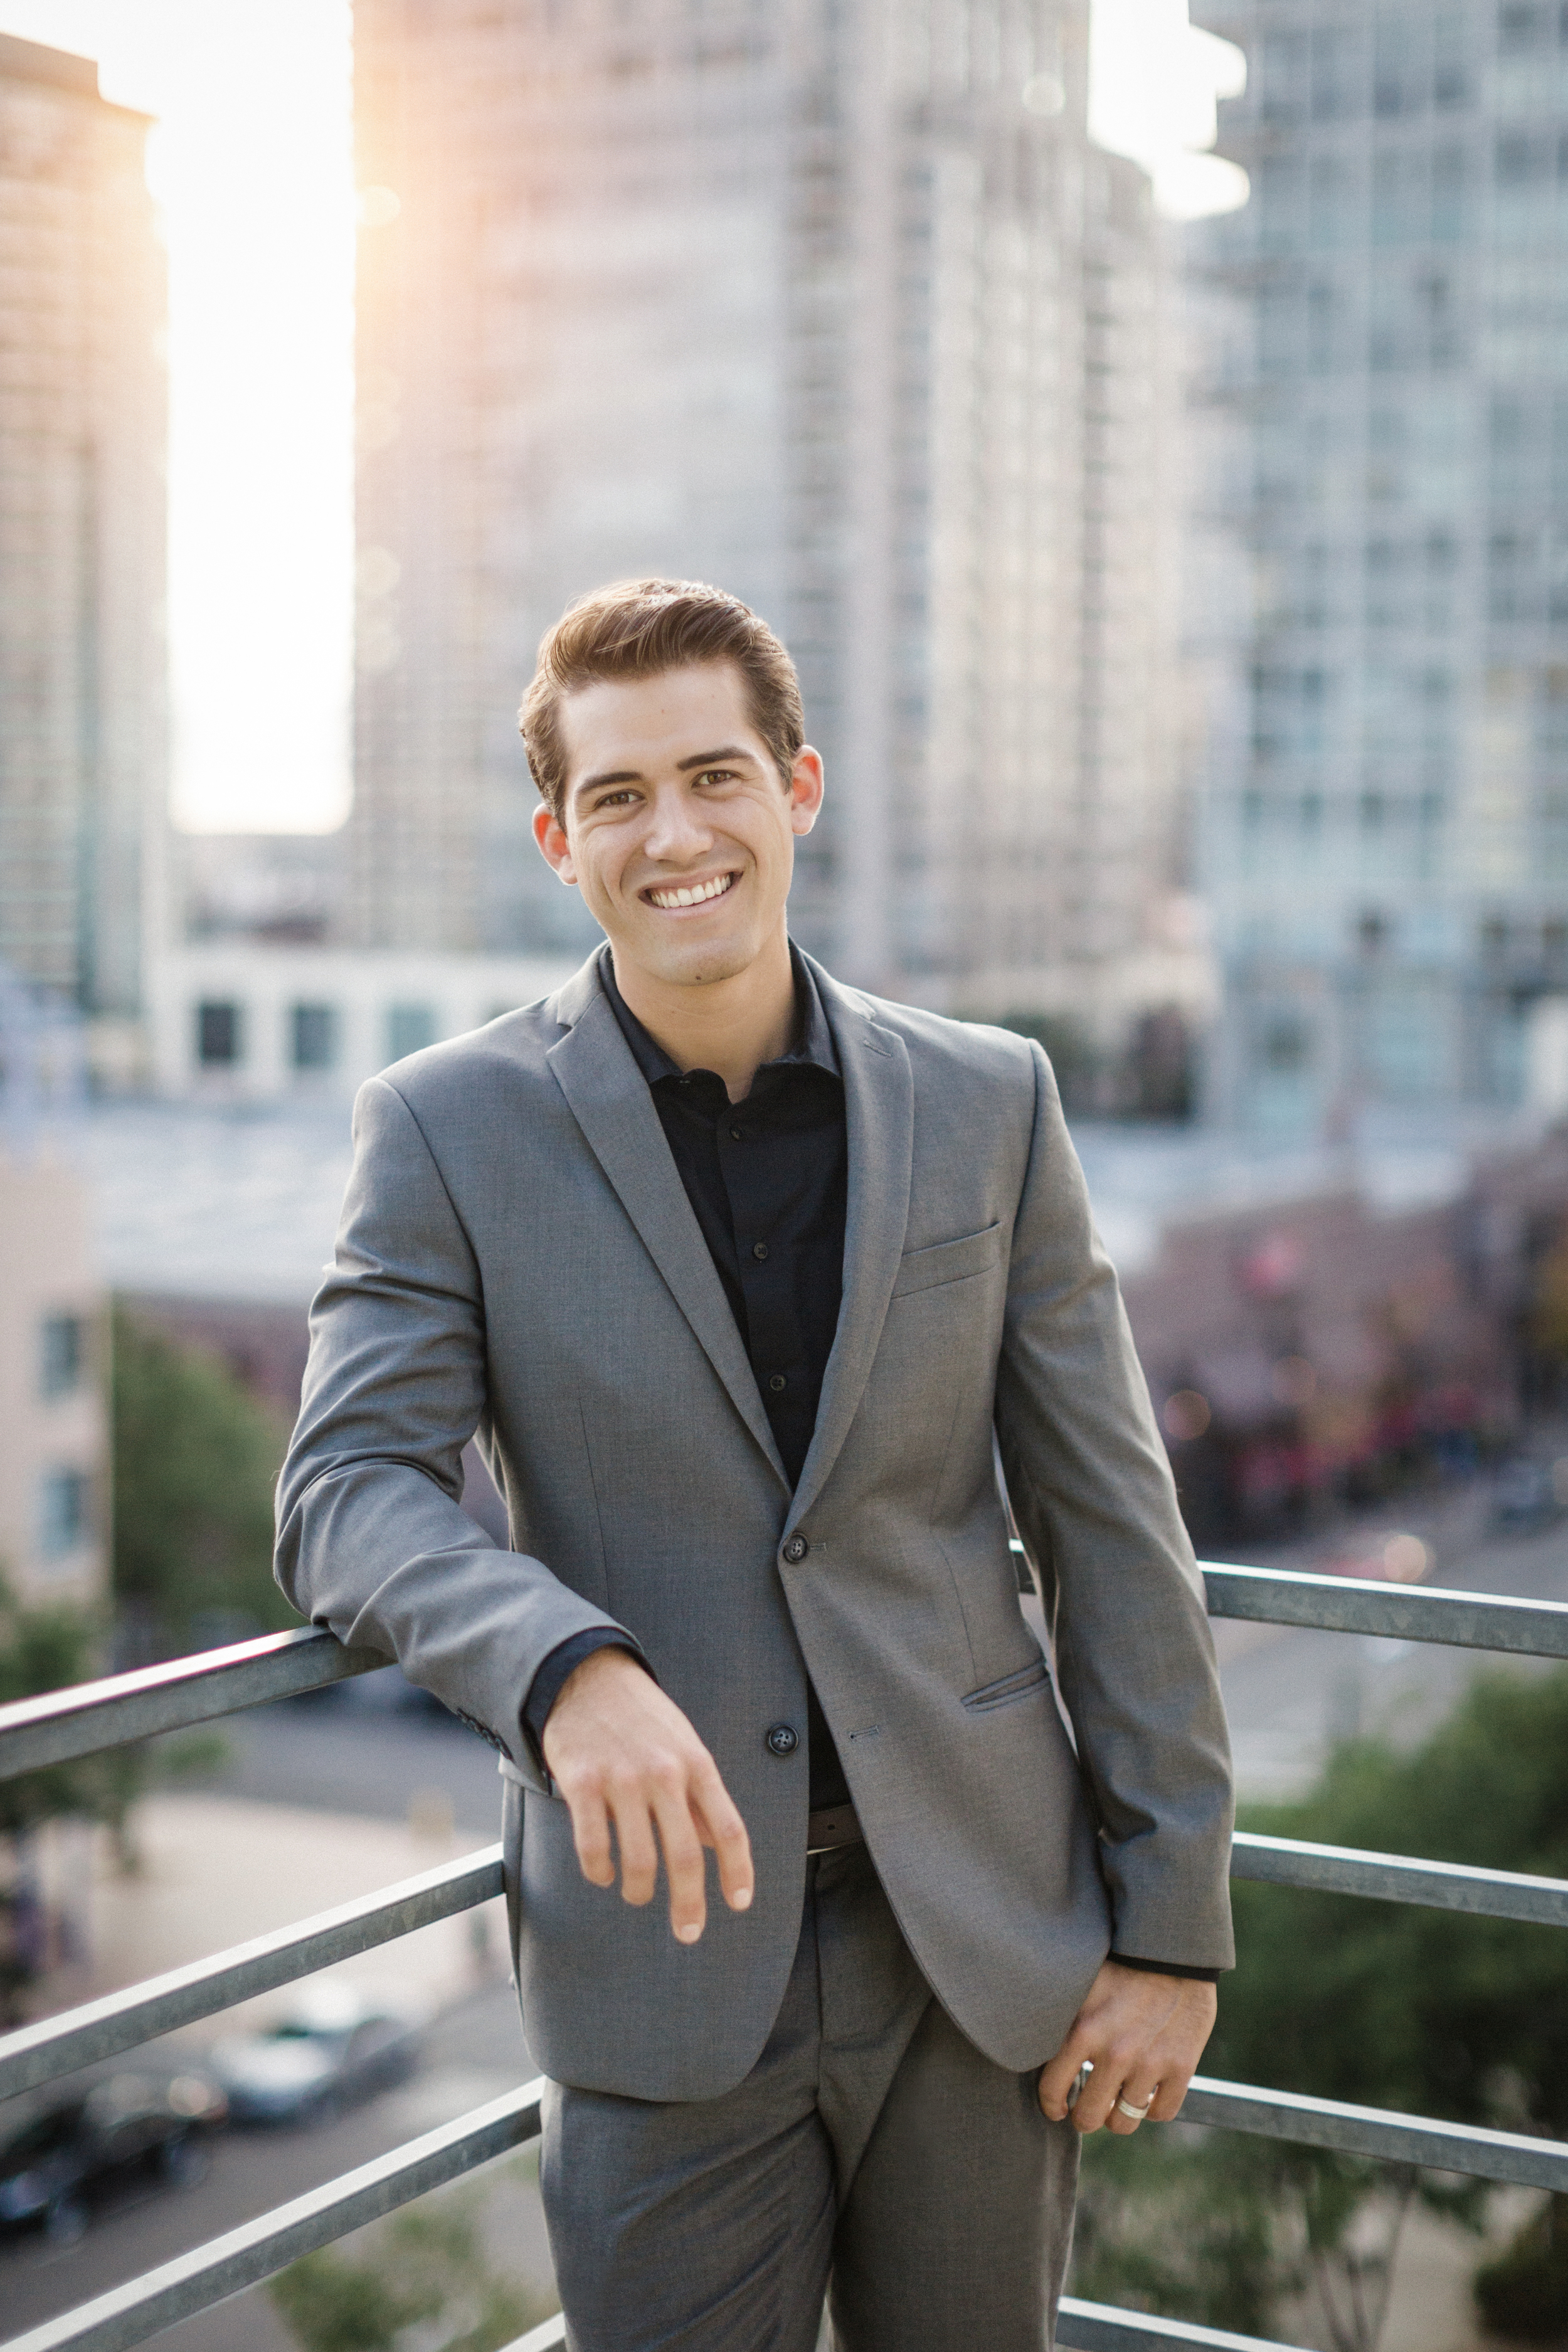 San Diego Real Estate Agent